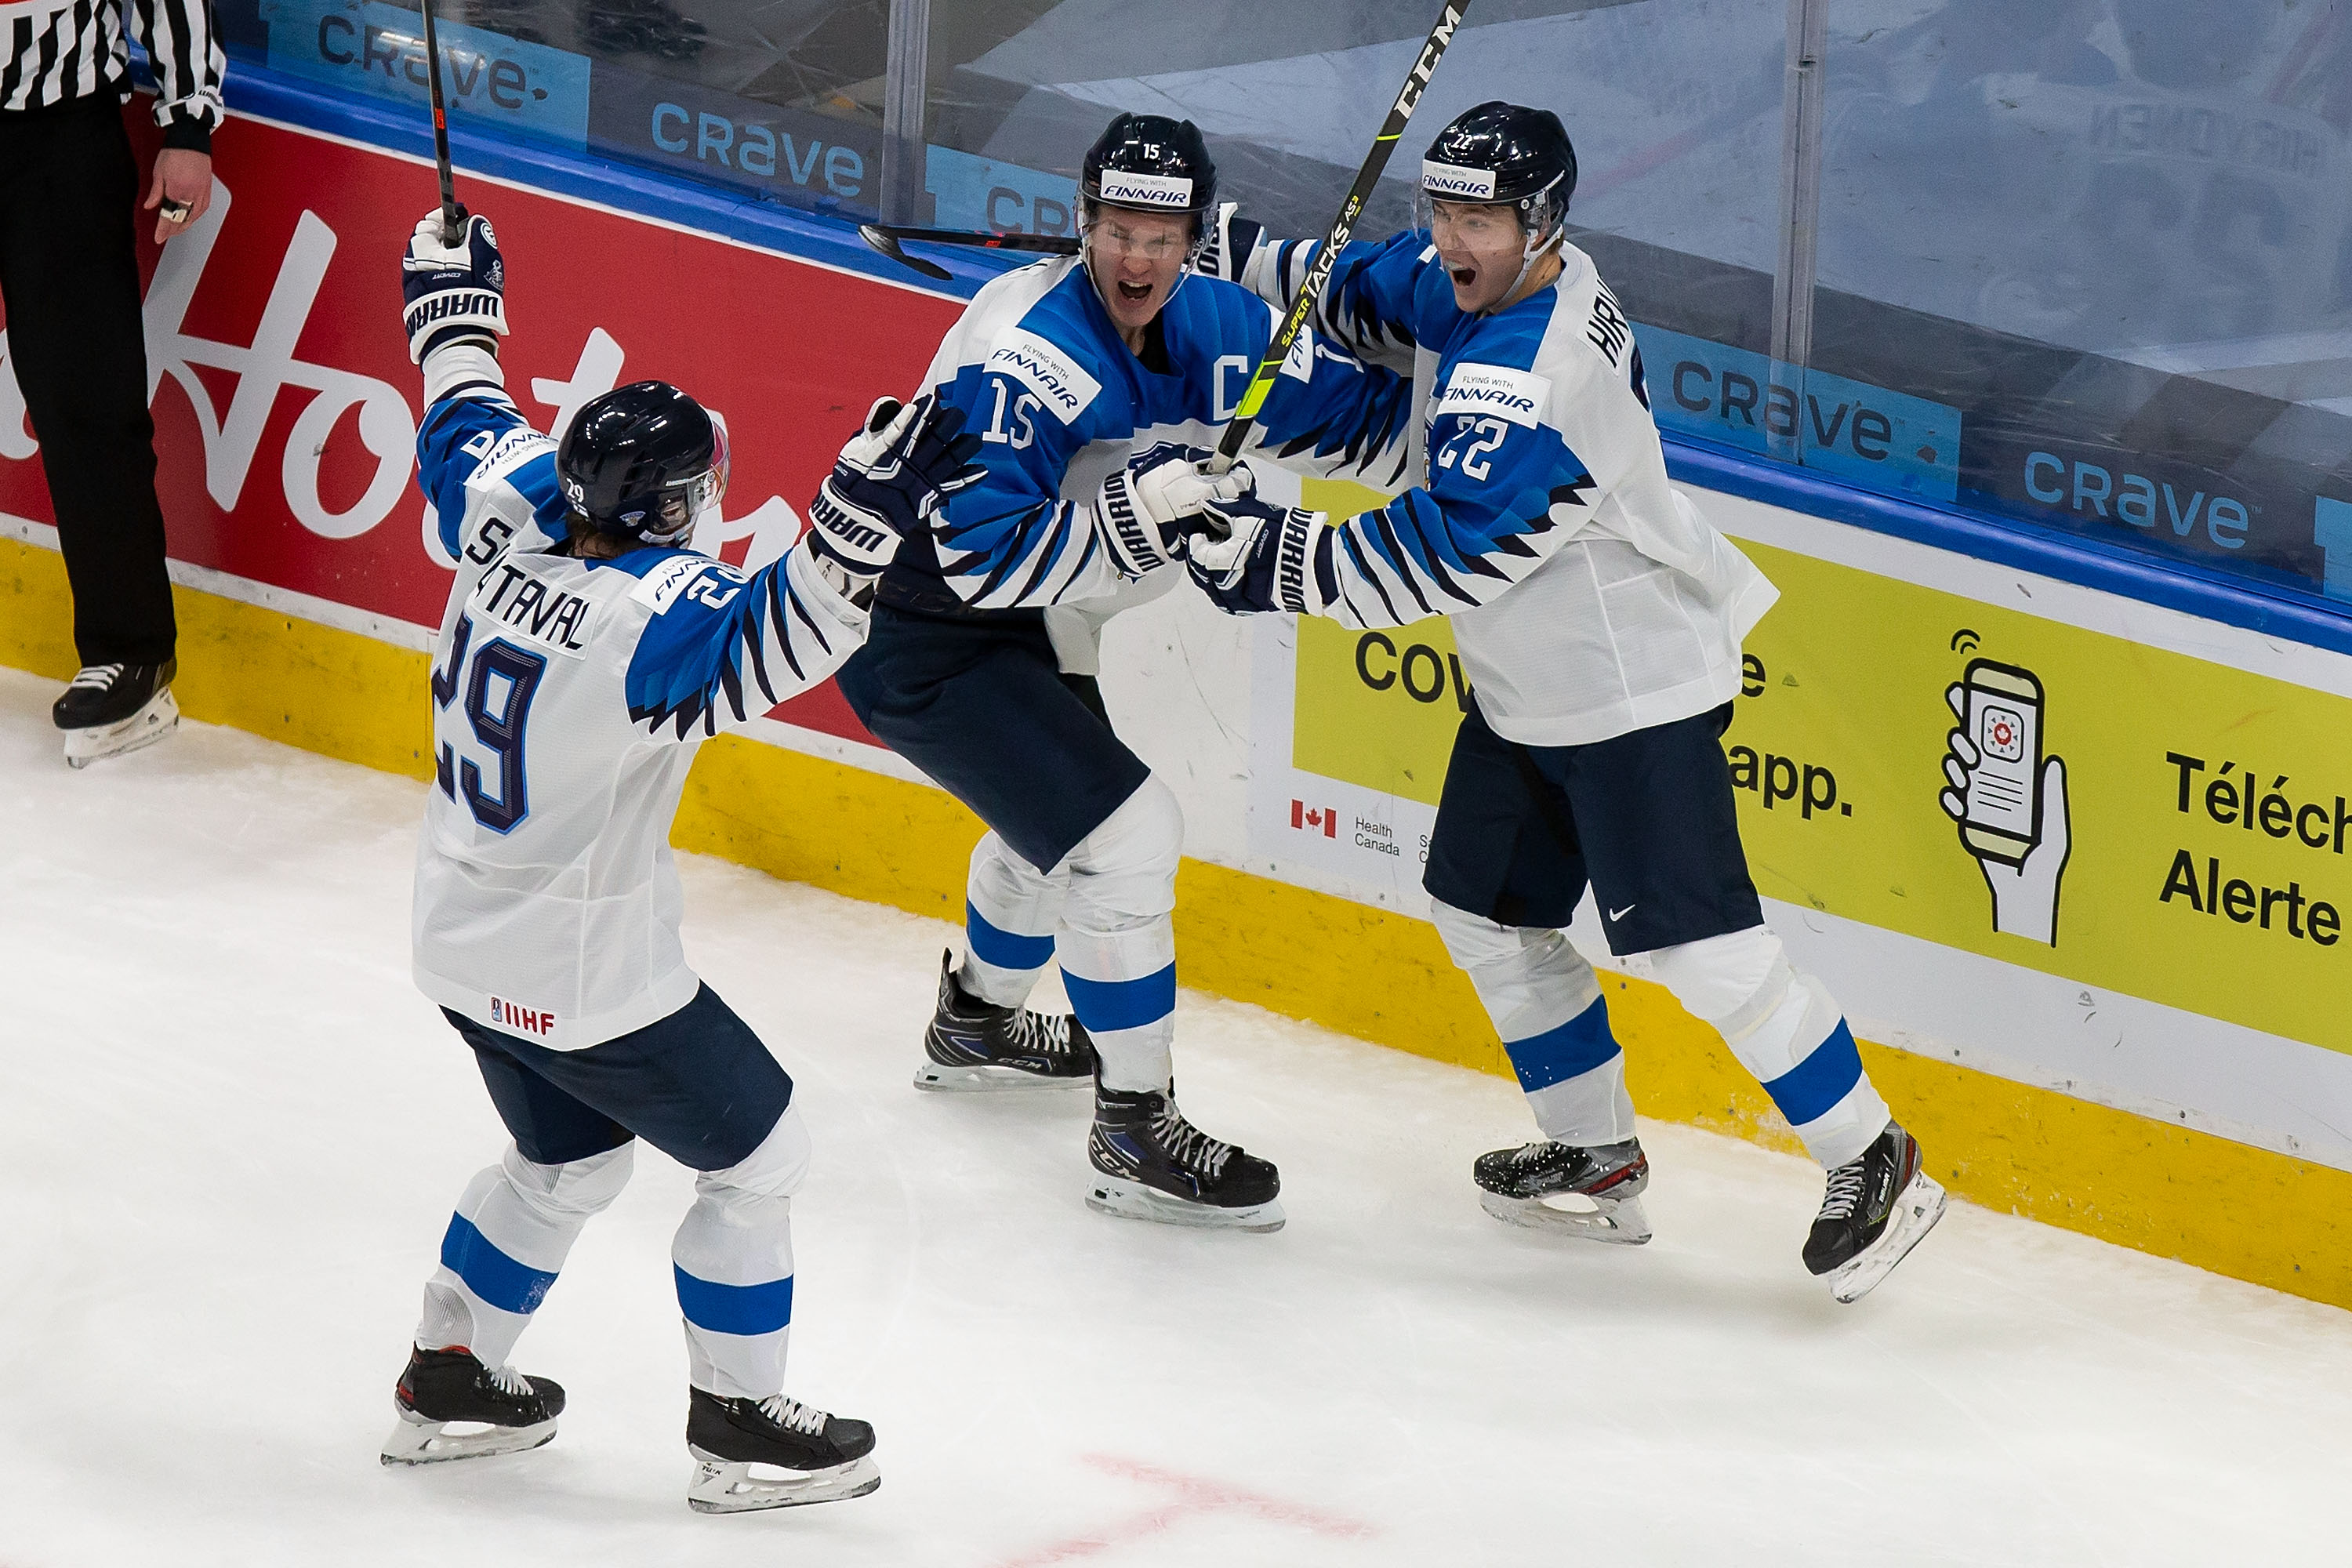 Kasper Simontaival #29, Anton Lundell #15 and Roni Hirvonen #22 of Finland celebrate a goal against the United States during the 2021 IIHF World Junior Championship semifinals at Rogers Place on January 4, 2021 in Edmonton, Canada.